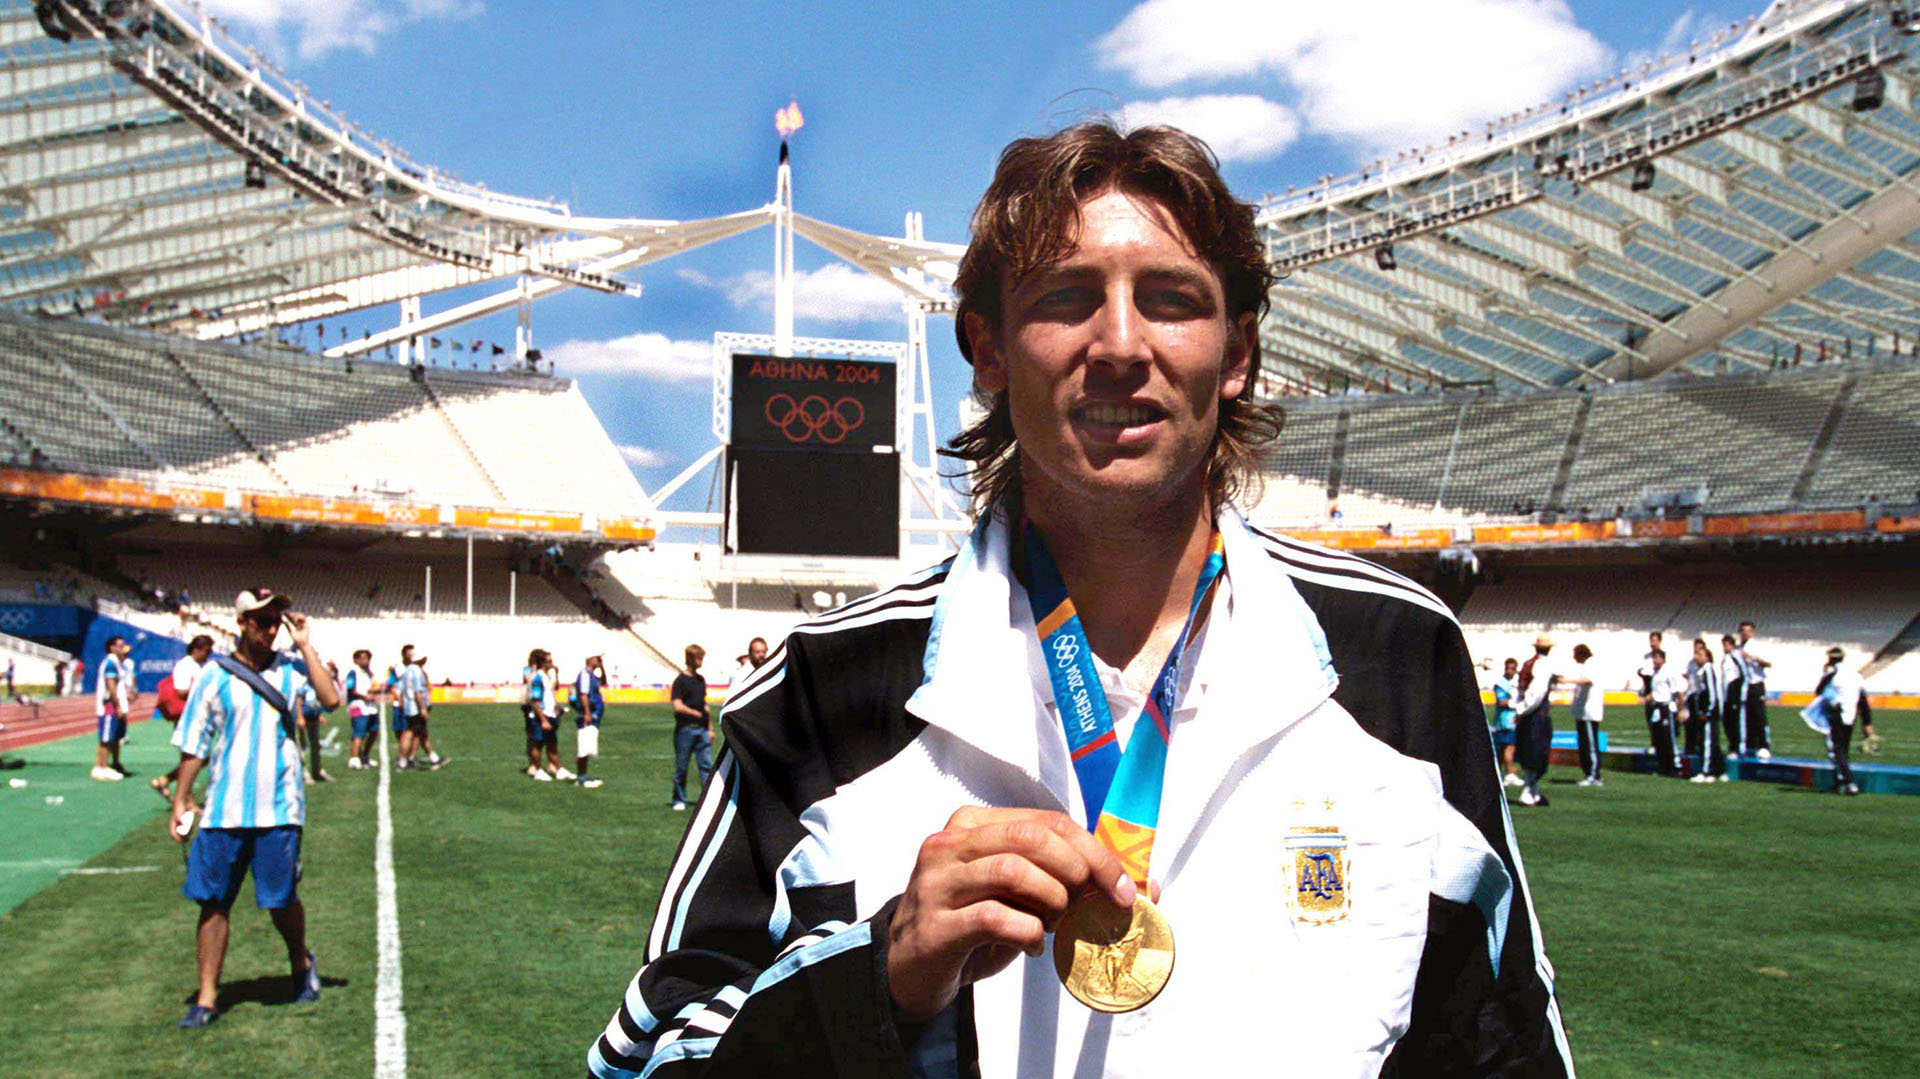 Mandatory Credit: Photo by Colorsport/Shutterstock (7435973aq) Gabriel Heinze (Argentina) who has recently signed for Manchester United celebrates with his gold Medal in front of the Olympic Flame Mens Football Final Argentina v Paraguay 28/8/2004 Athens Olympics 2004 Athens Olympics - 28 Aug 2004